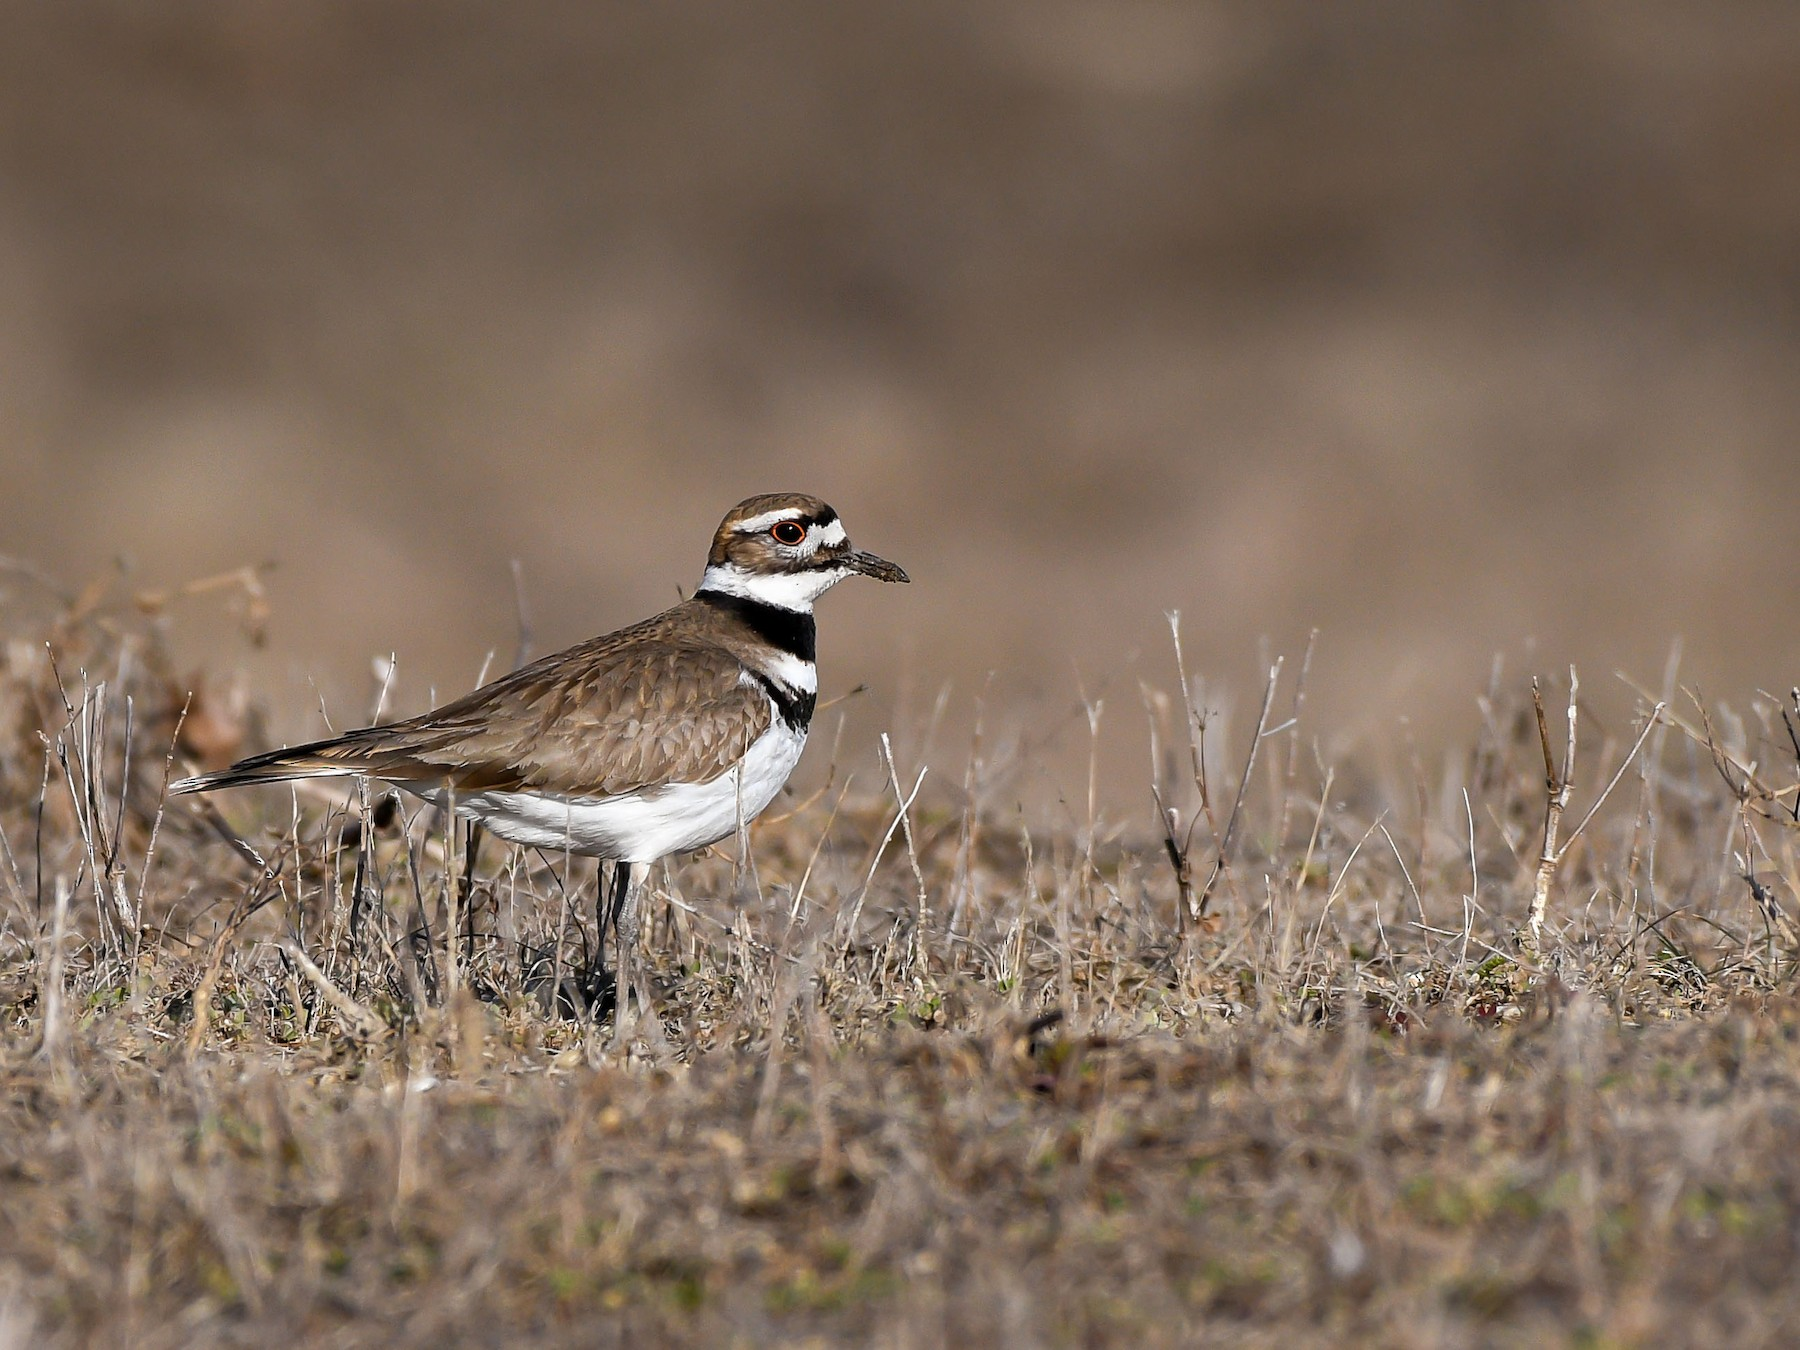 Killdeer - Charles Shields